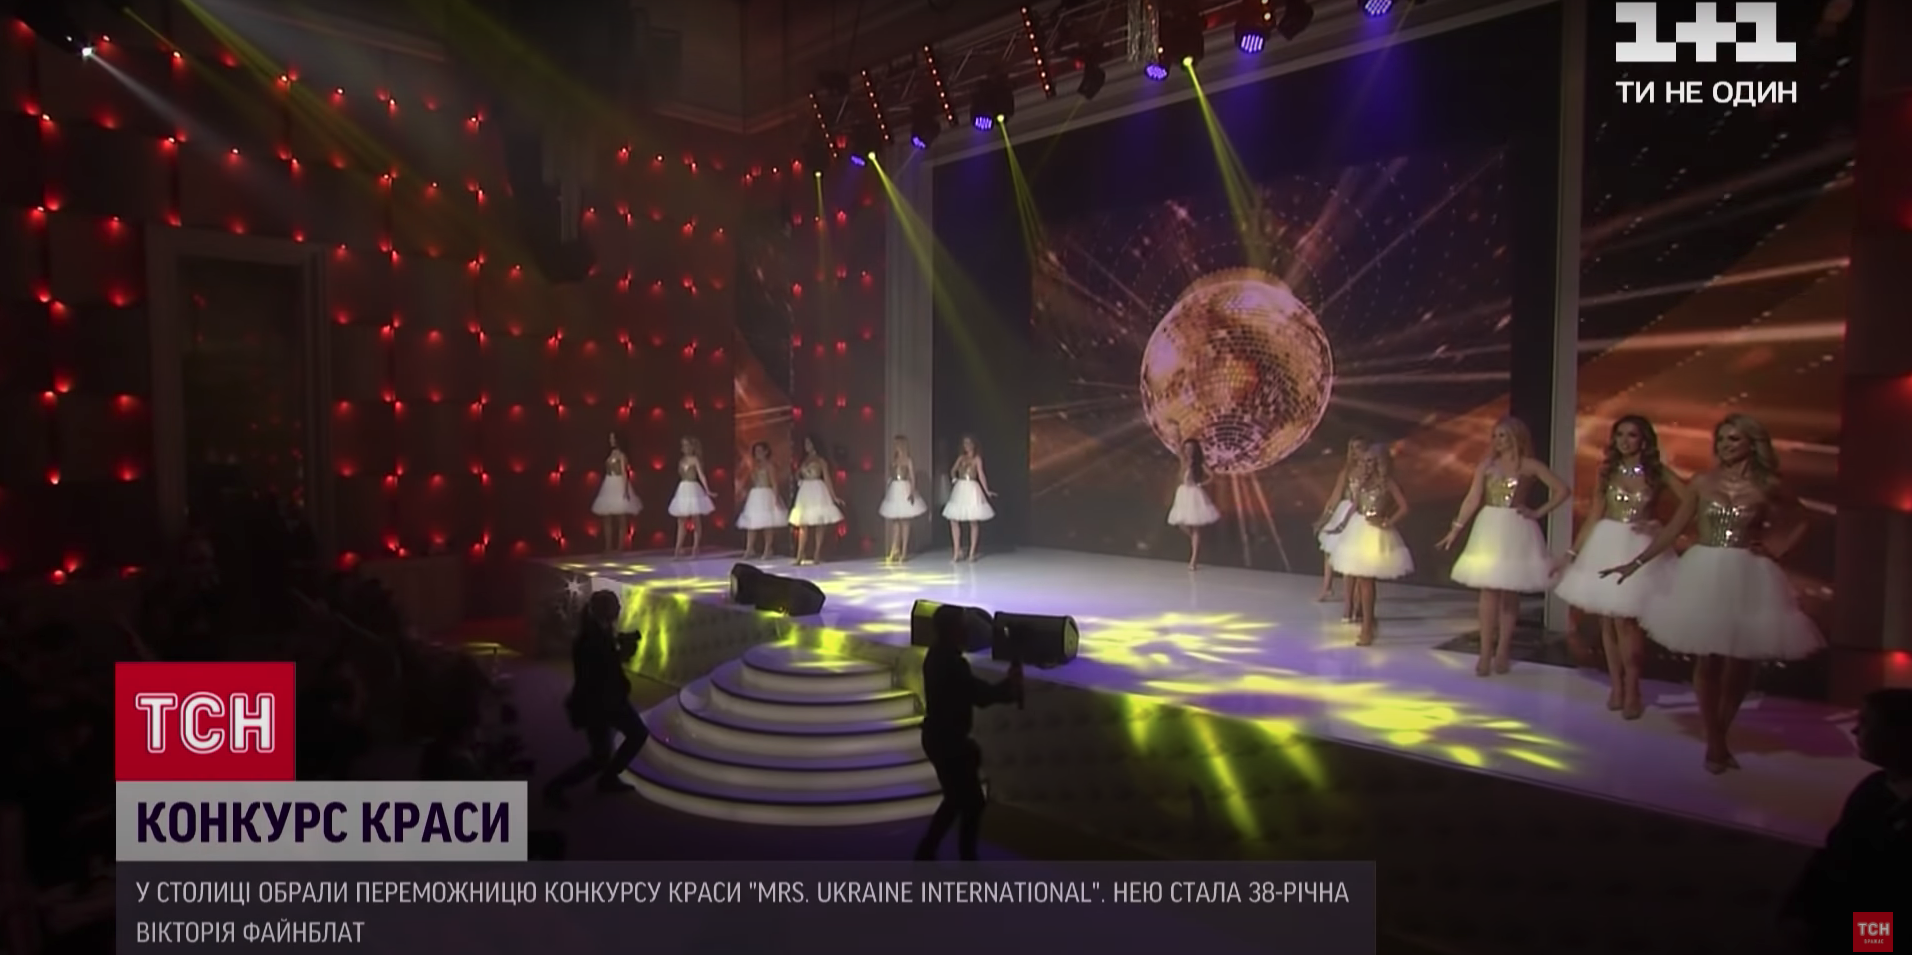 Mrs. Ukraine International | Сюжет ТСН на 1+1 про MRS UKRAINE INTERNATIONAL 2020